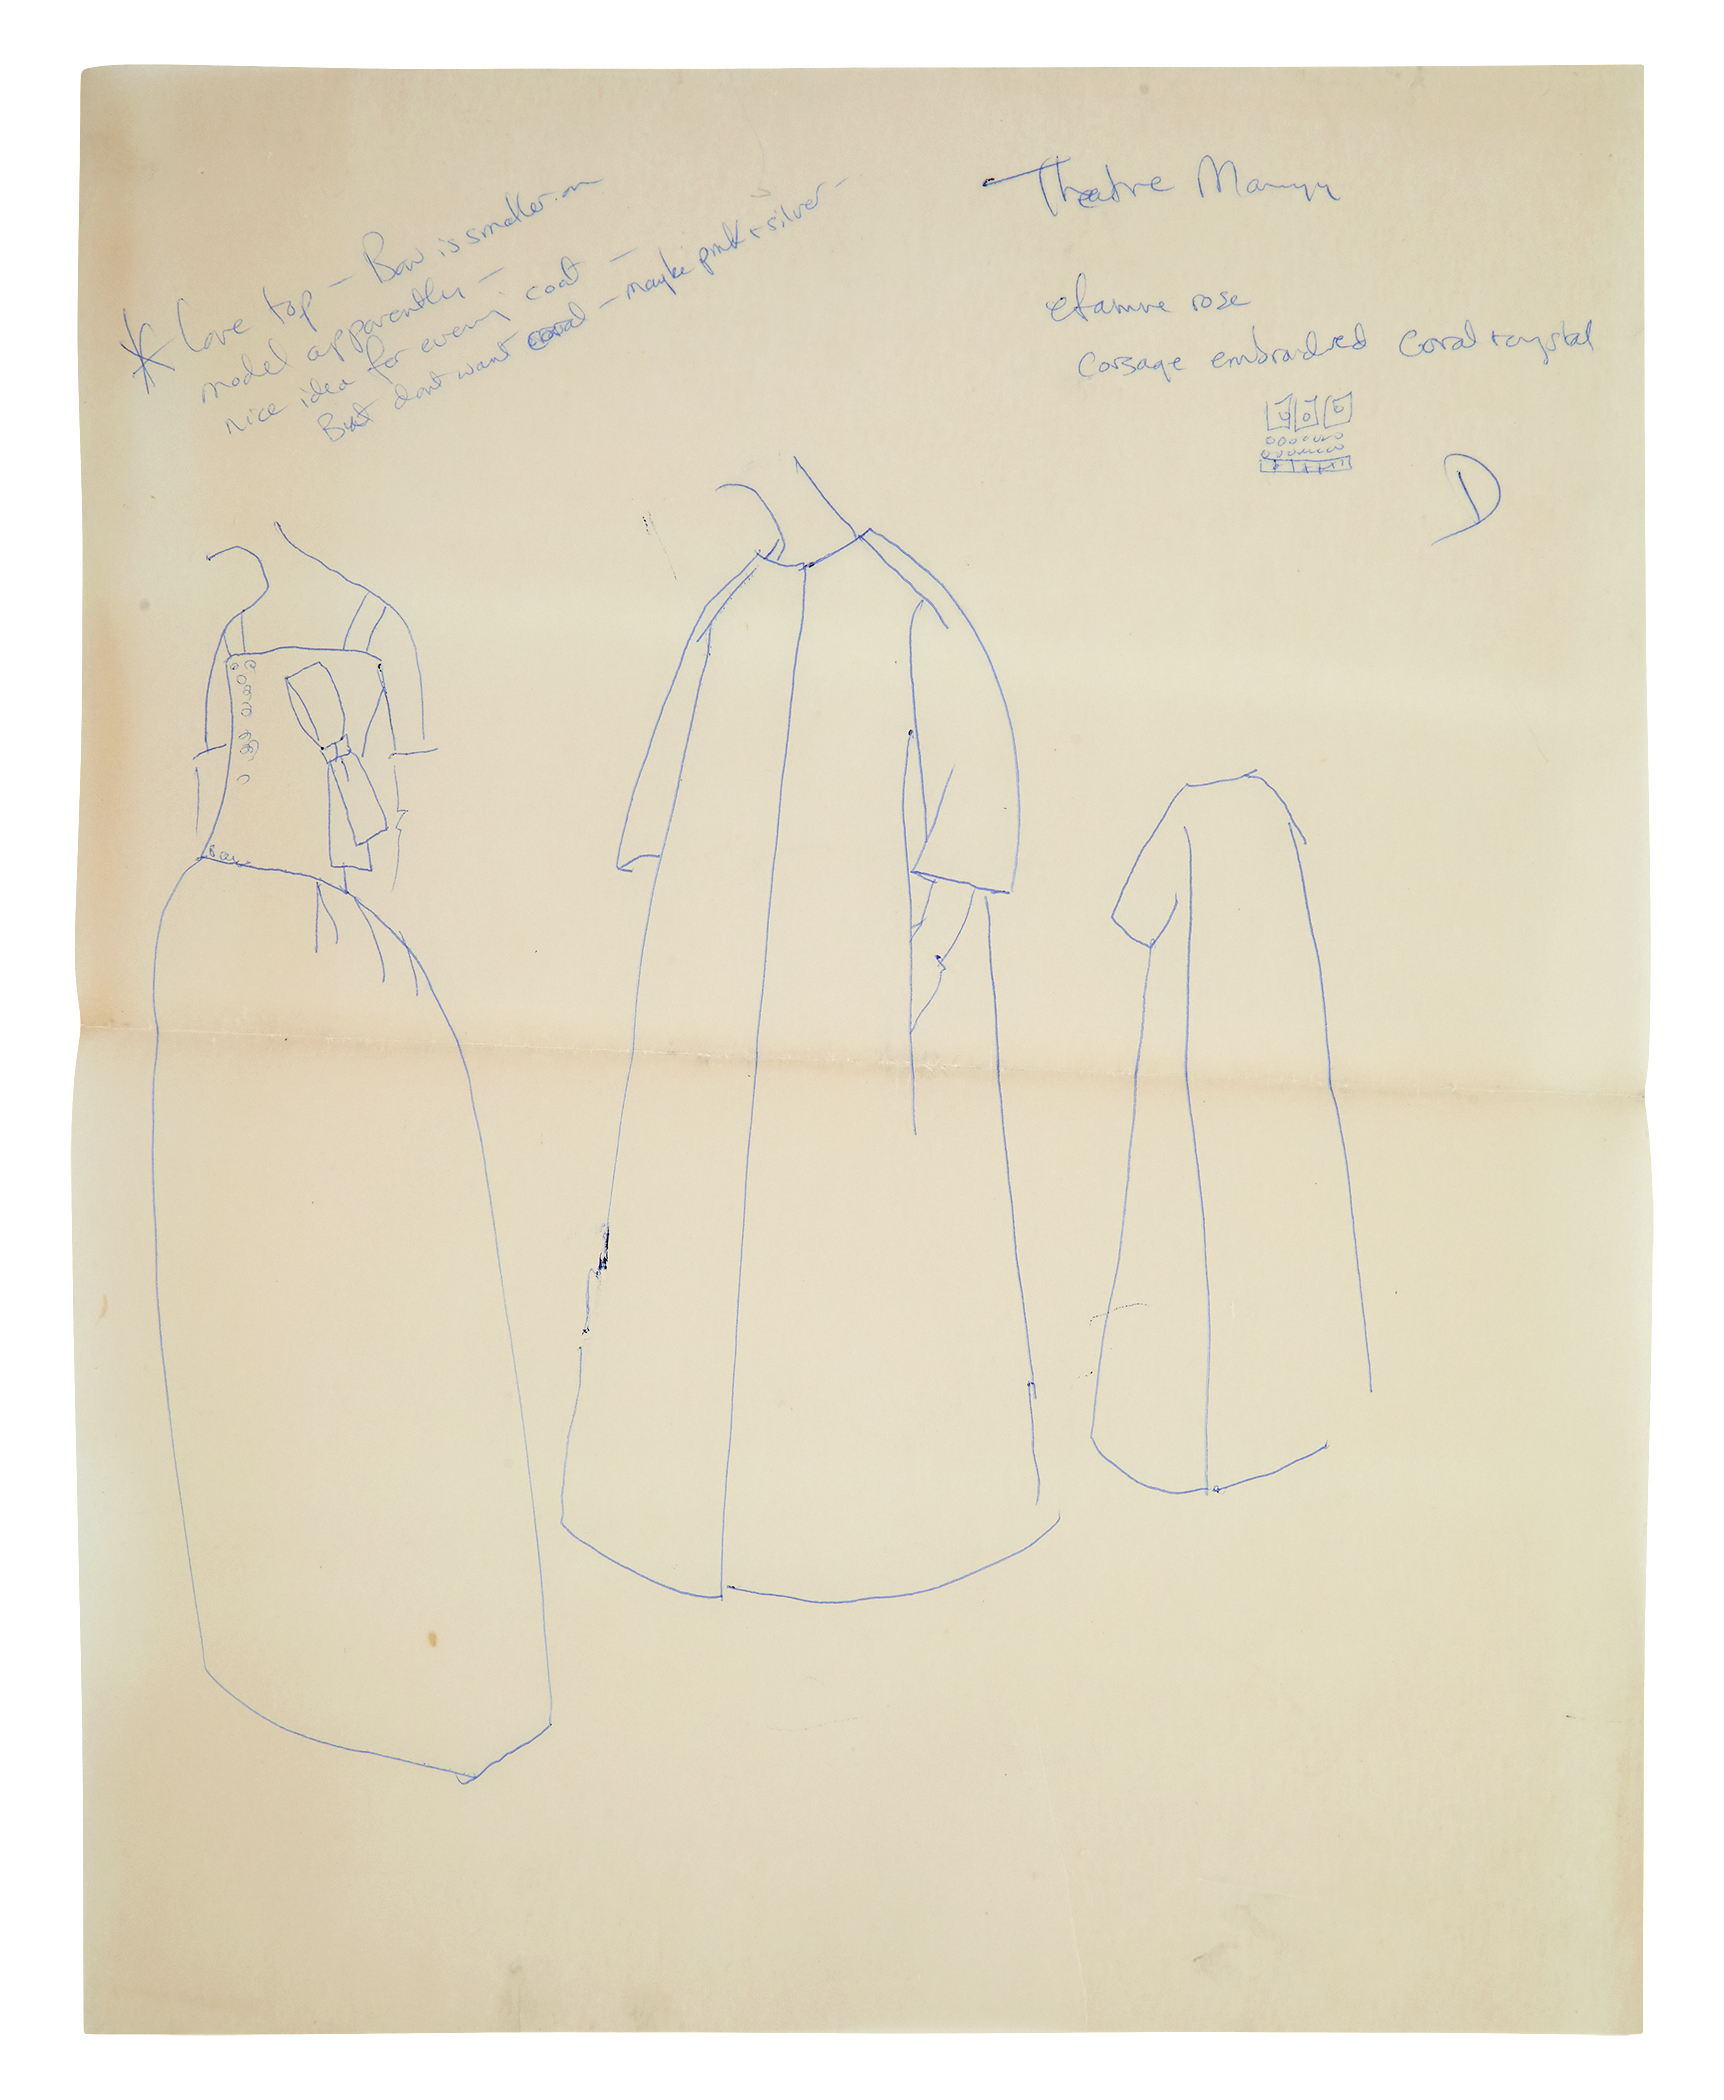 Fashion drawing, with handwritten notes, done by First Lady Jackie Kennedy in the early 1960s. It shows three headless figures.